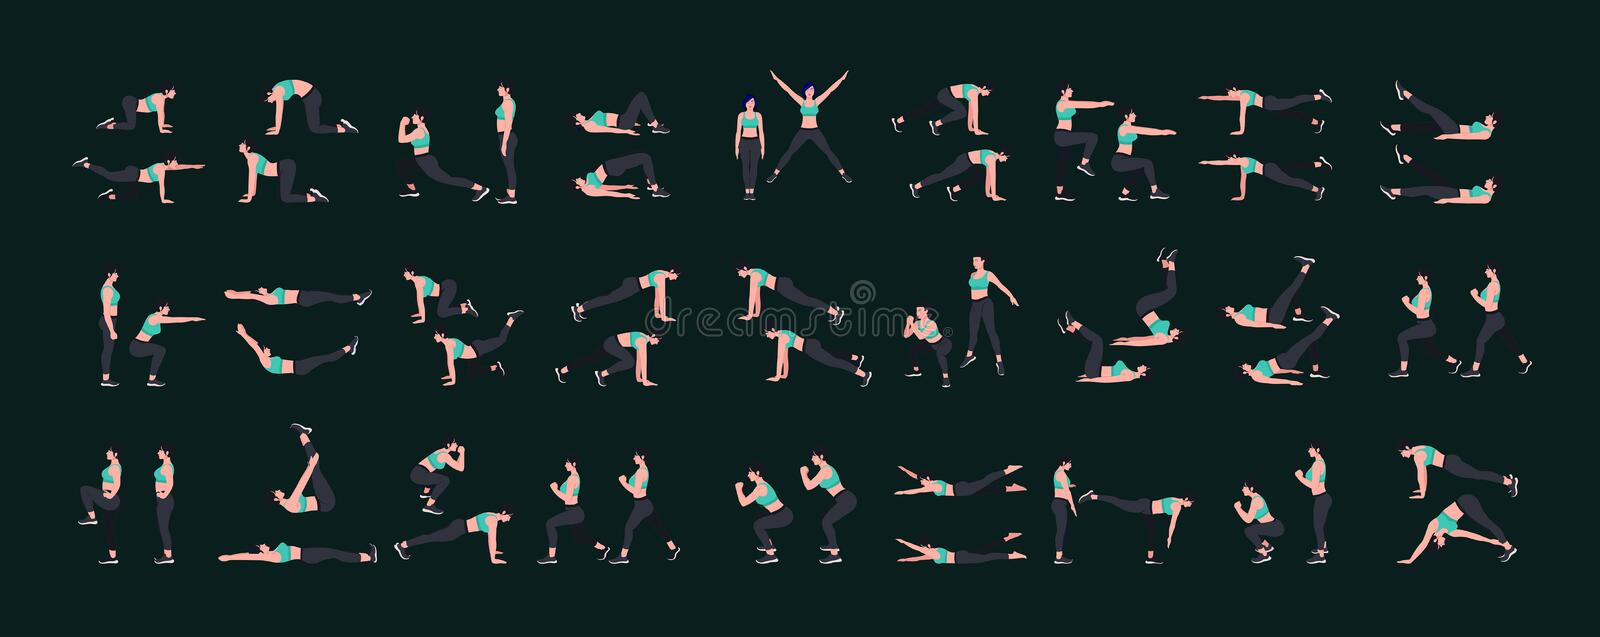 Women Workout Set. Women doing fitness and yoga exercises. Lunges, Pushups, Squats, Dumbbell rows, Burpees, Side planks, Situps. Glute bridge, Leg Raise vector illustration